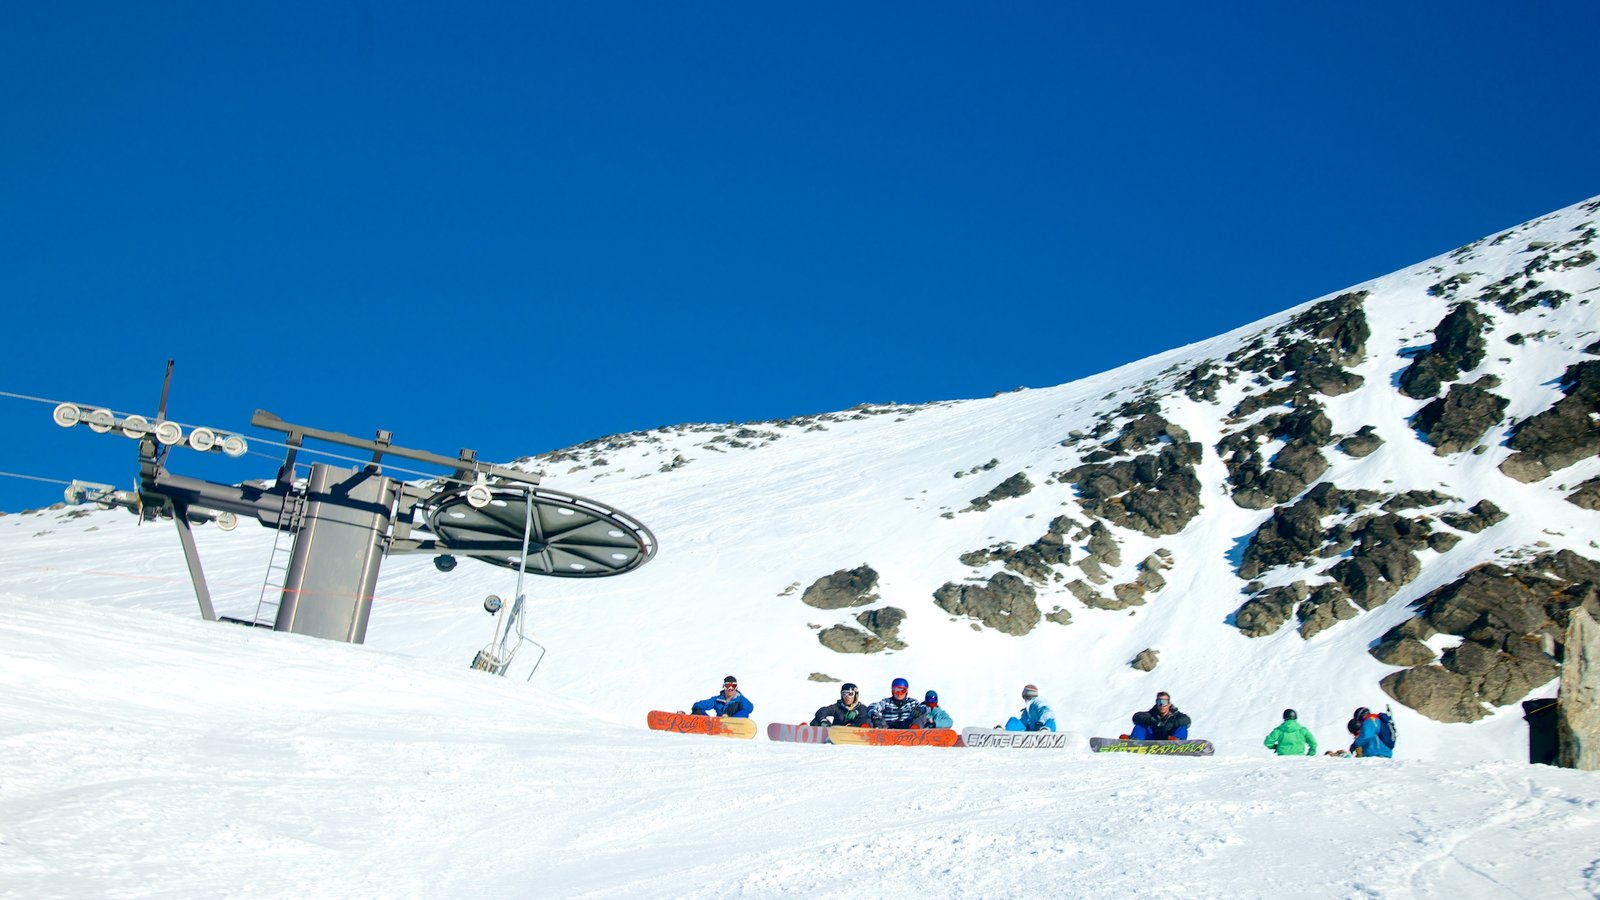 The Remarkables Ski Area showing snow boarding and snow